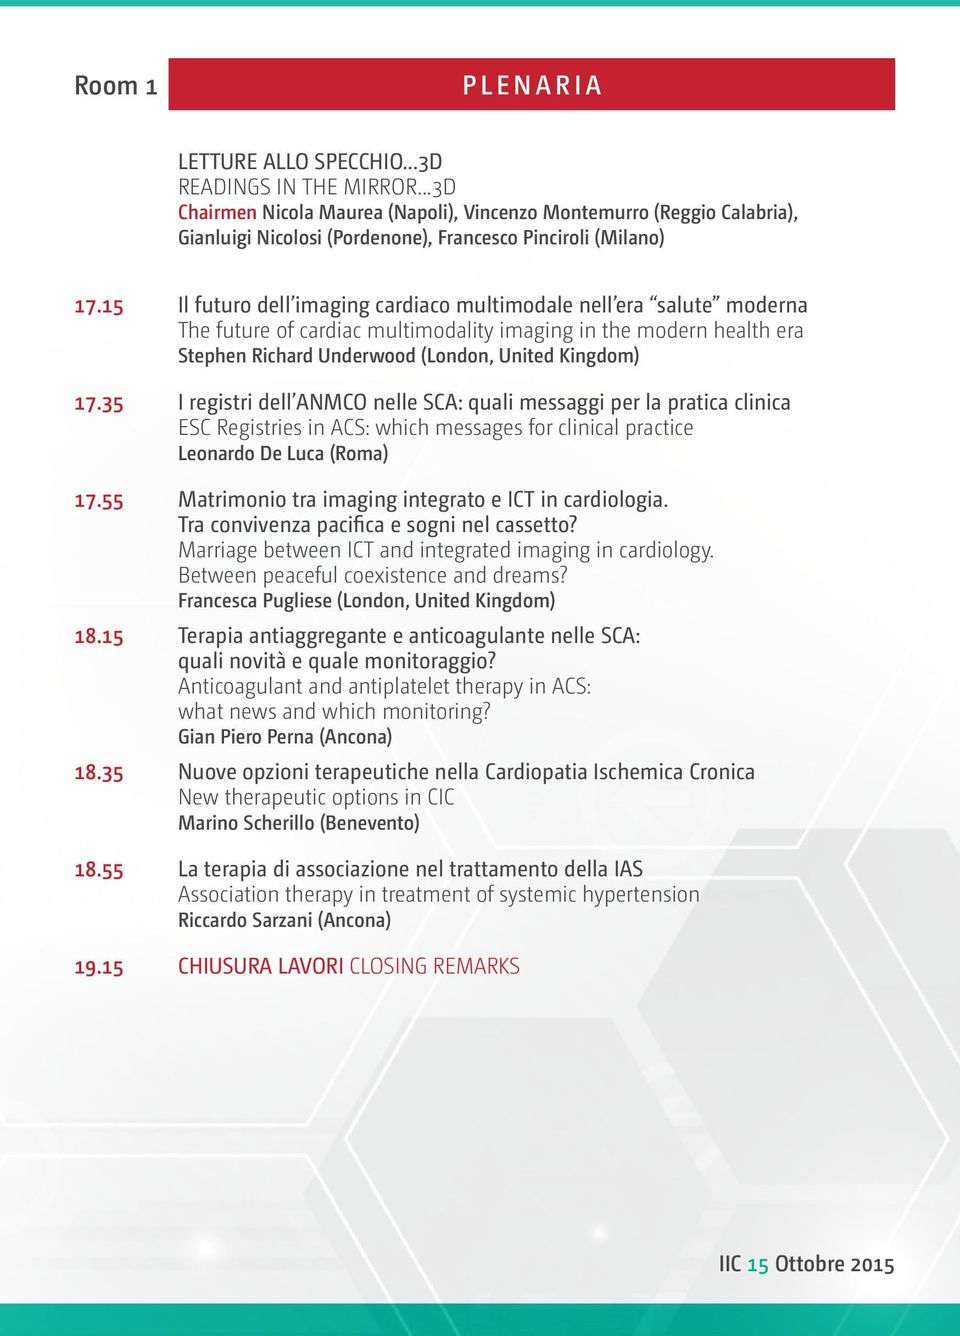 15 Il futuro dell imaging cardiaco multimodale nell era salute moderna The future of cardiac multimodality imaging in the modern health era Stephen Richard Underwood (London, United Kingdom) 17.